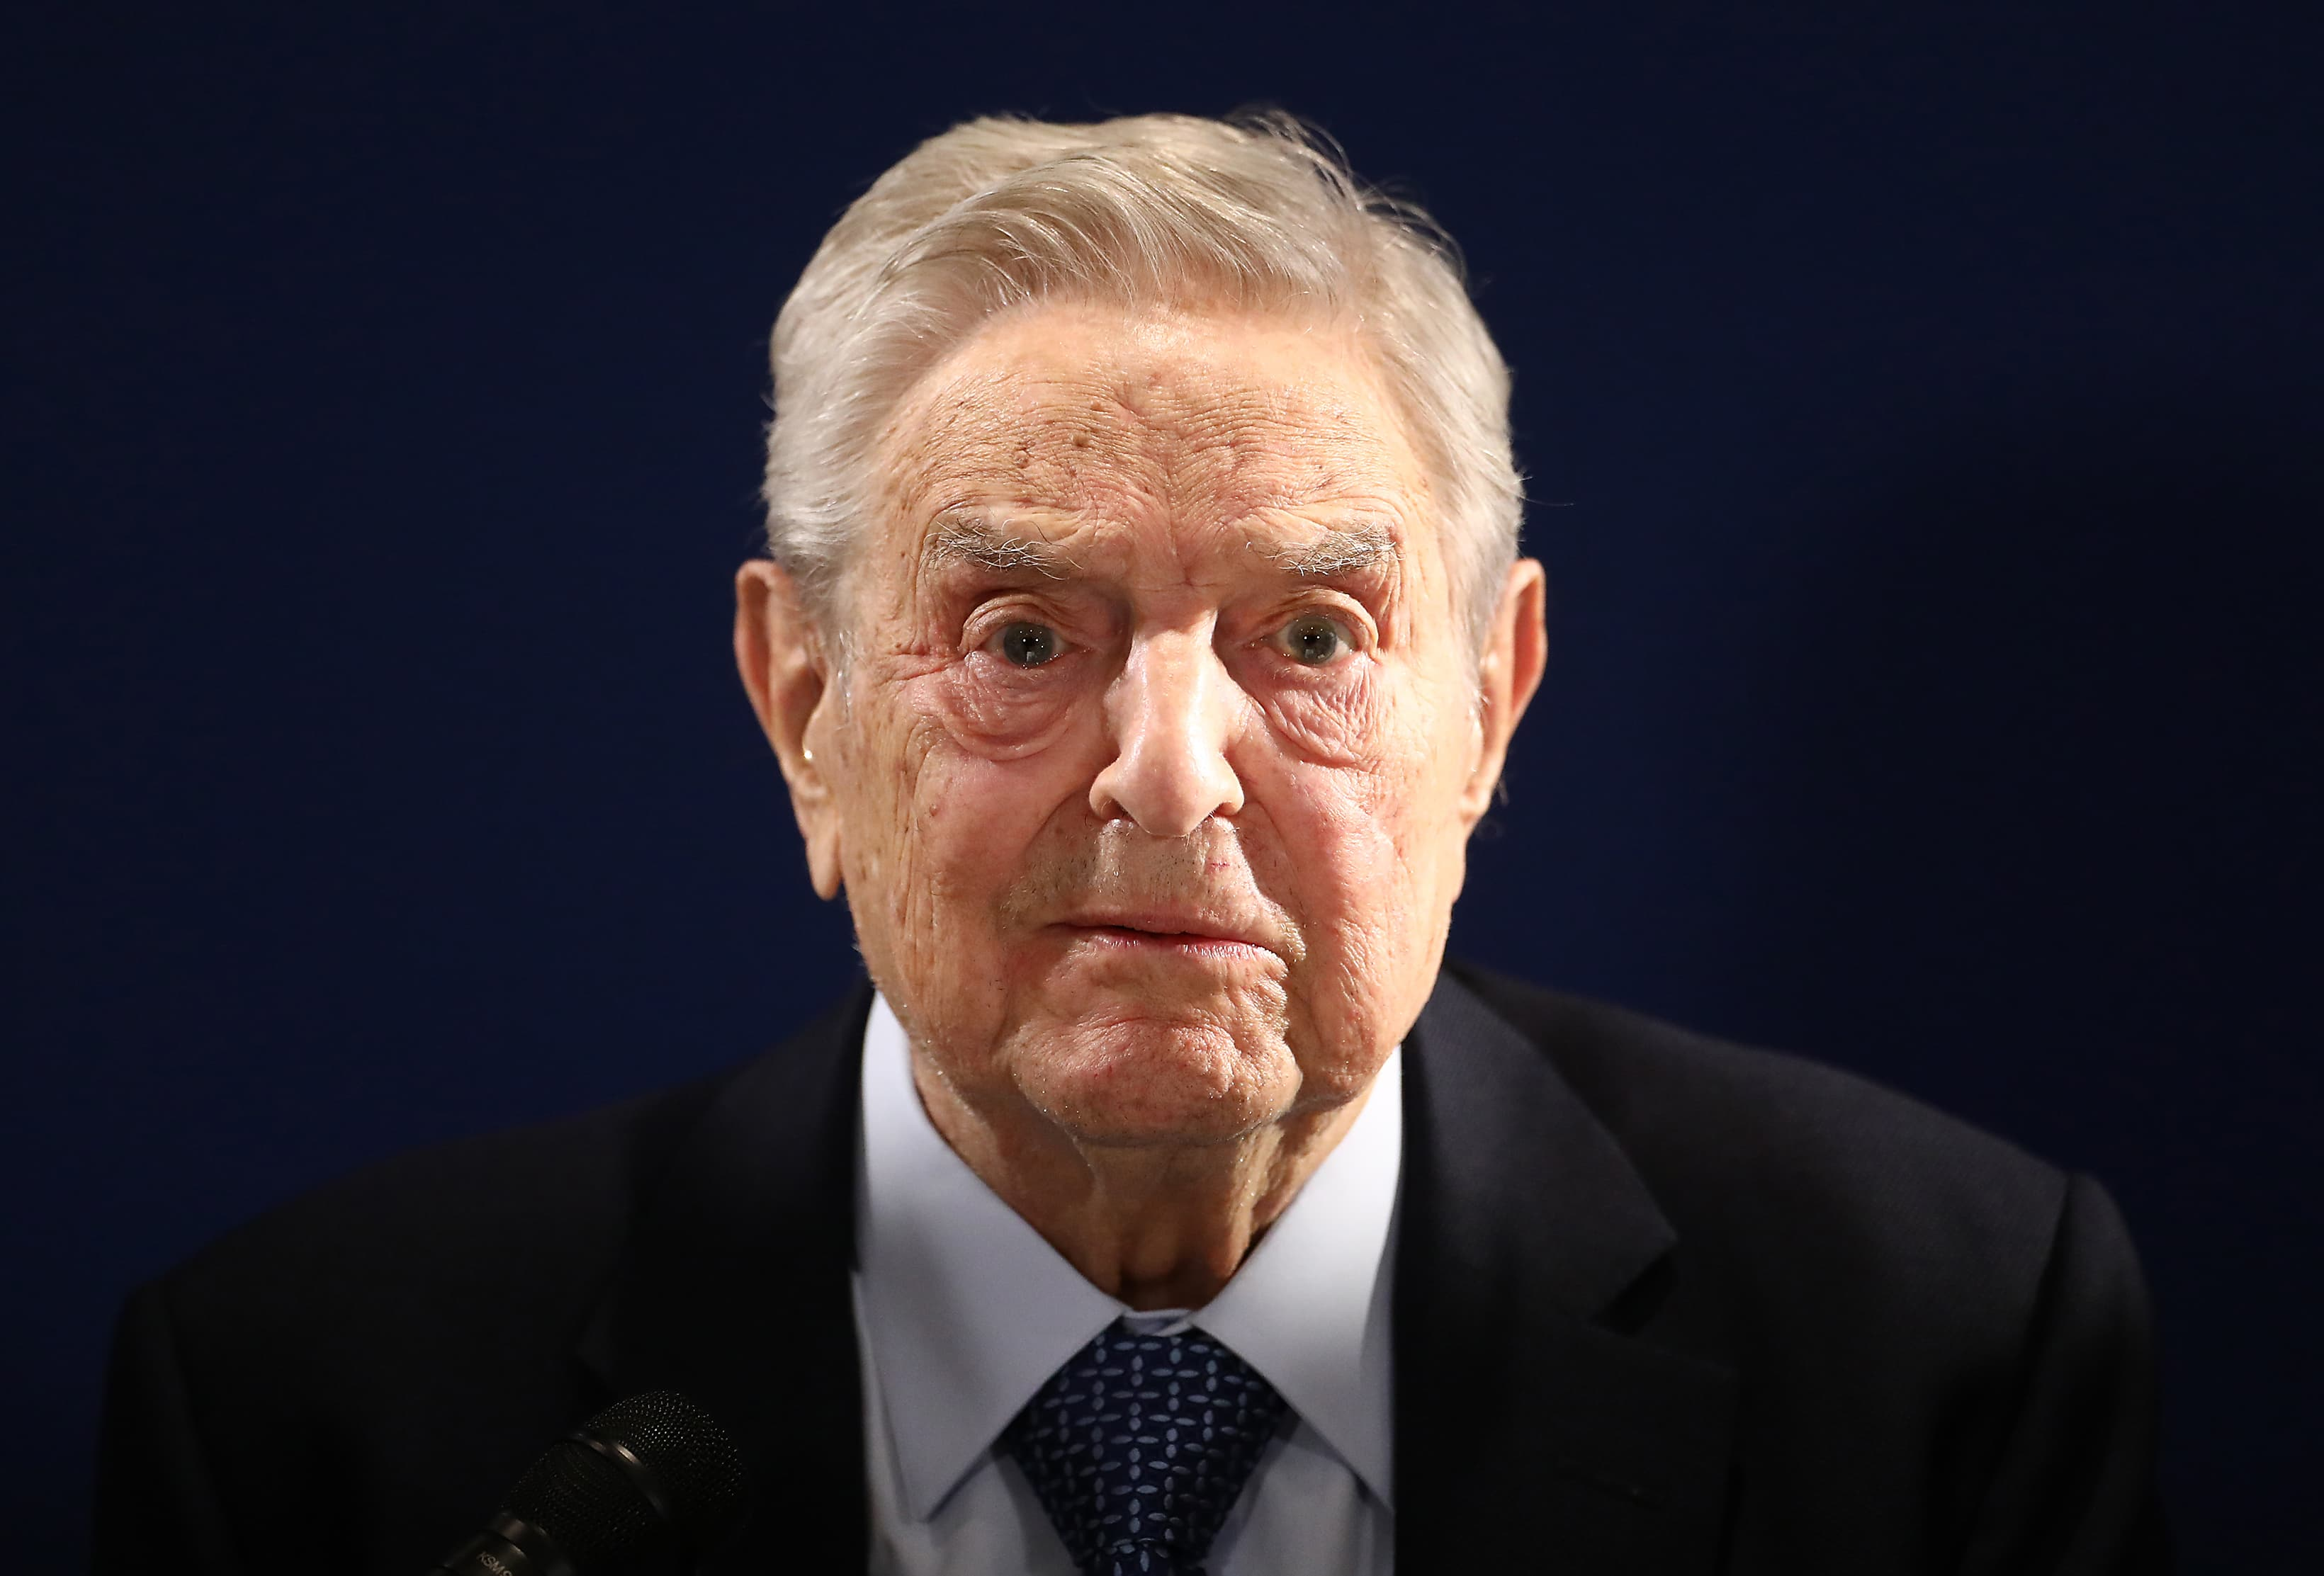 George Soros says US should not work closely with China on coronavirus